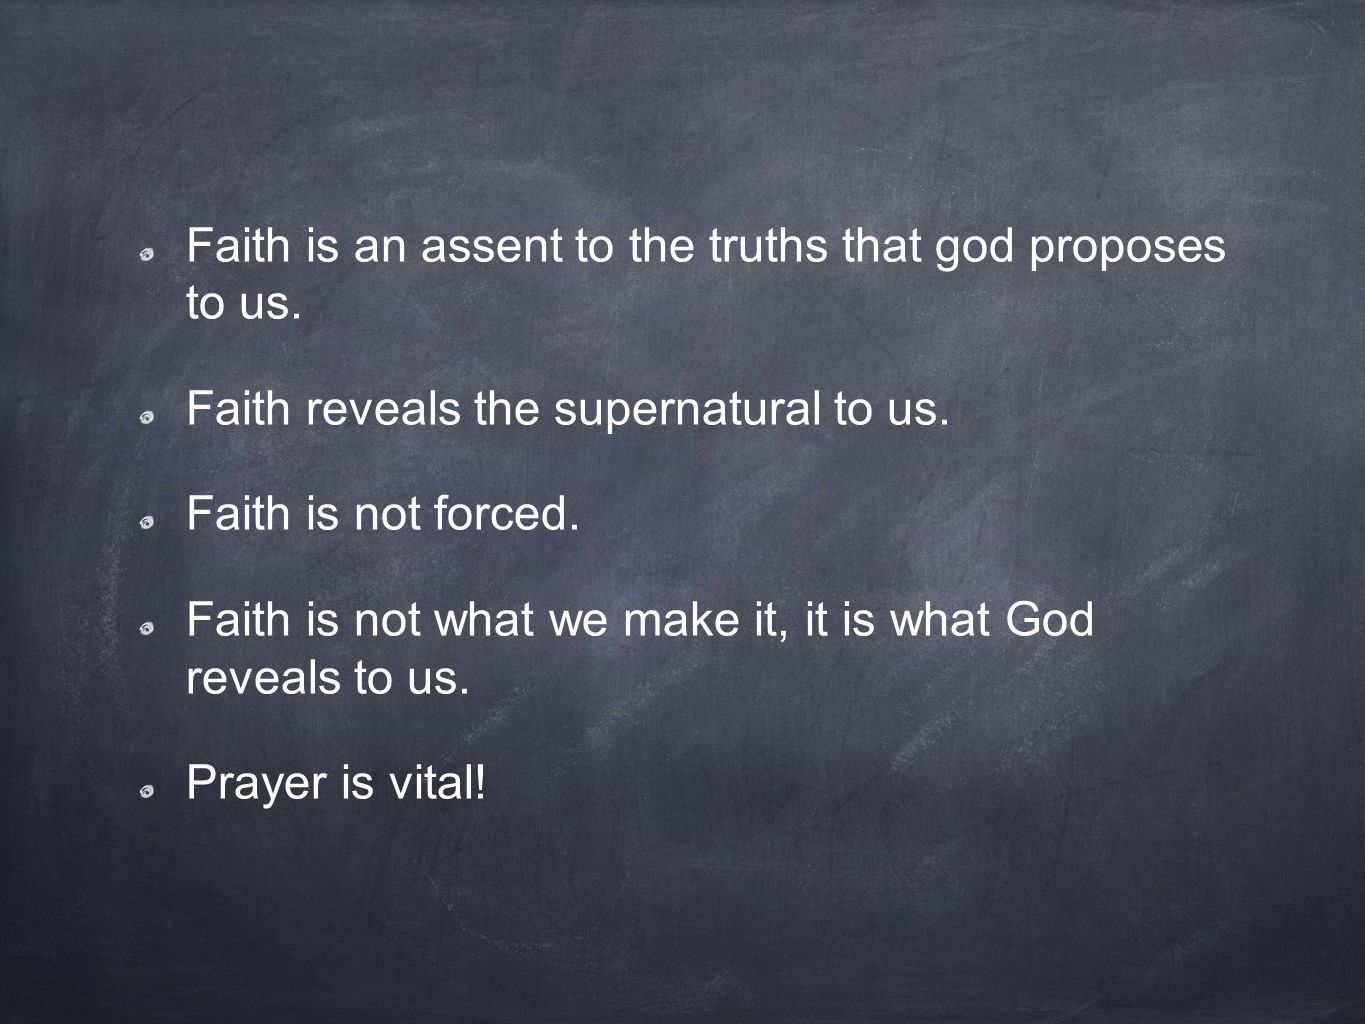 Faith is an assent to the truths that god proposes to us. Faith reveals the supernatural to us. Faith is not forced. Faith is not what we make it, it